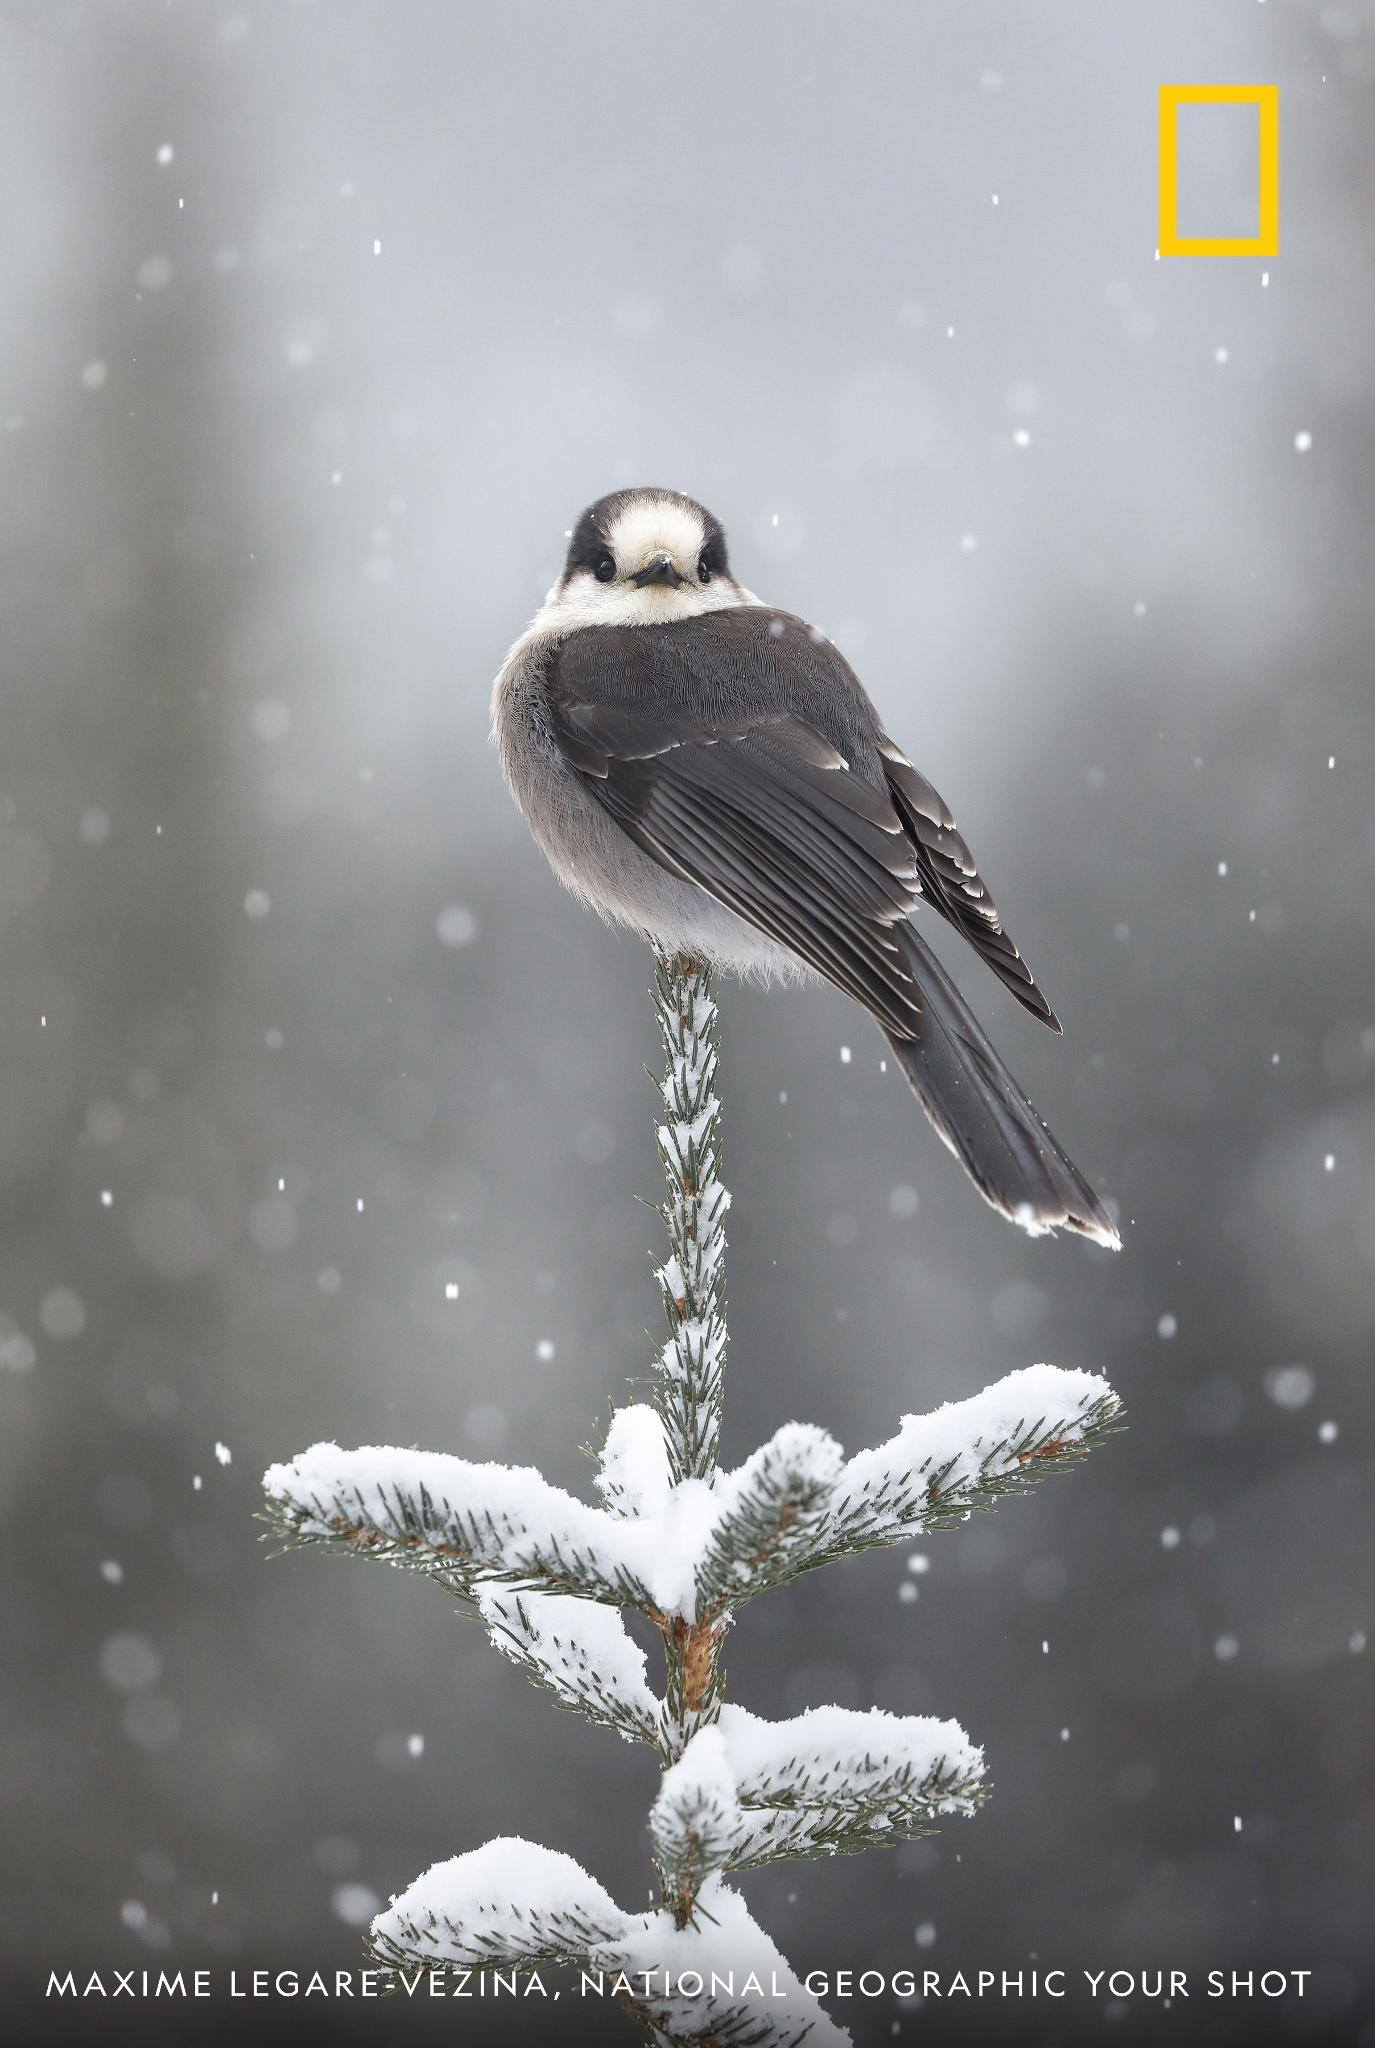 A gray jay poised on a branch seems to make eye contact with photographer Maxime Legare-vezina in this beautiful image taken during a snowstorm in Quebec. https://on.natgeo.com/2XrGZto